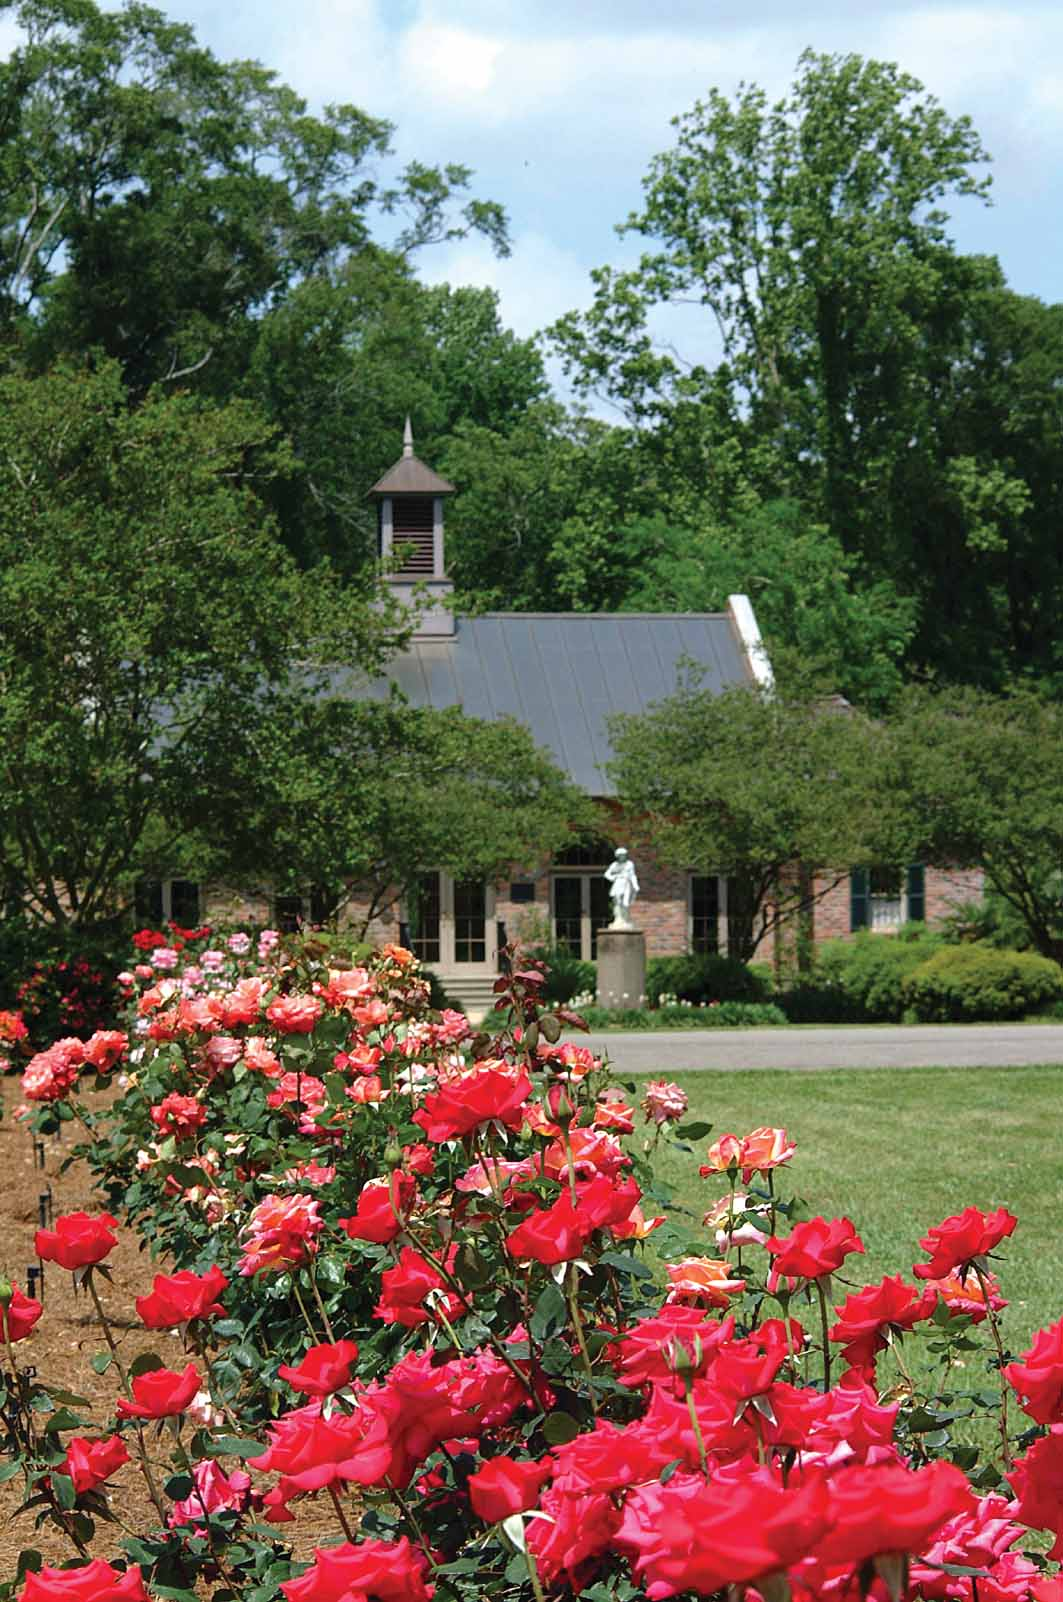 Burden center home to ornamental turfgrass research lsu agcenter for The gardens of the american rose center